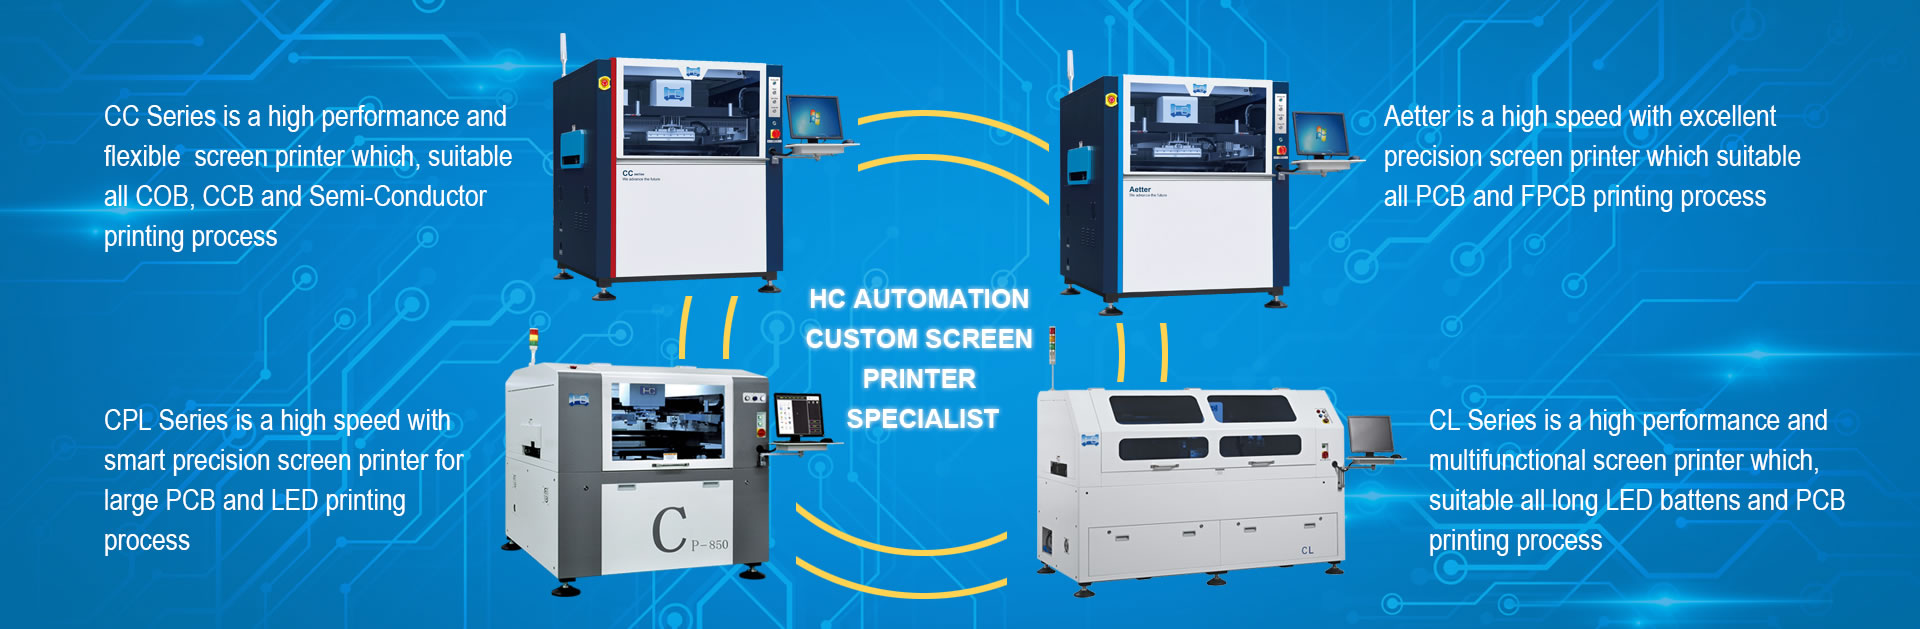 SCREEN PRINTER_Shenzhen HC Automation is SMT Automatic Visual Solder